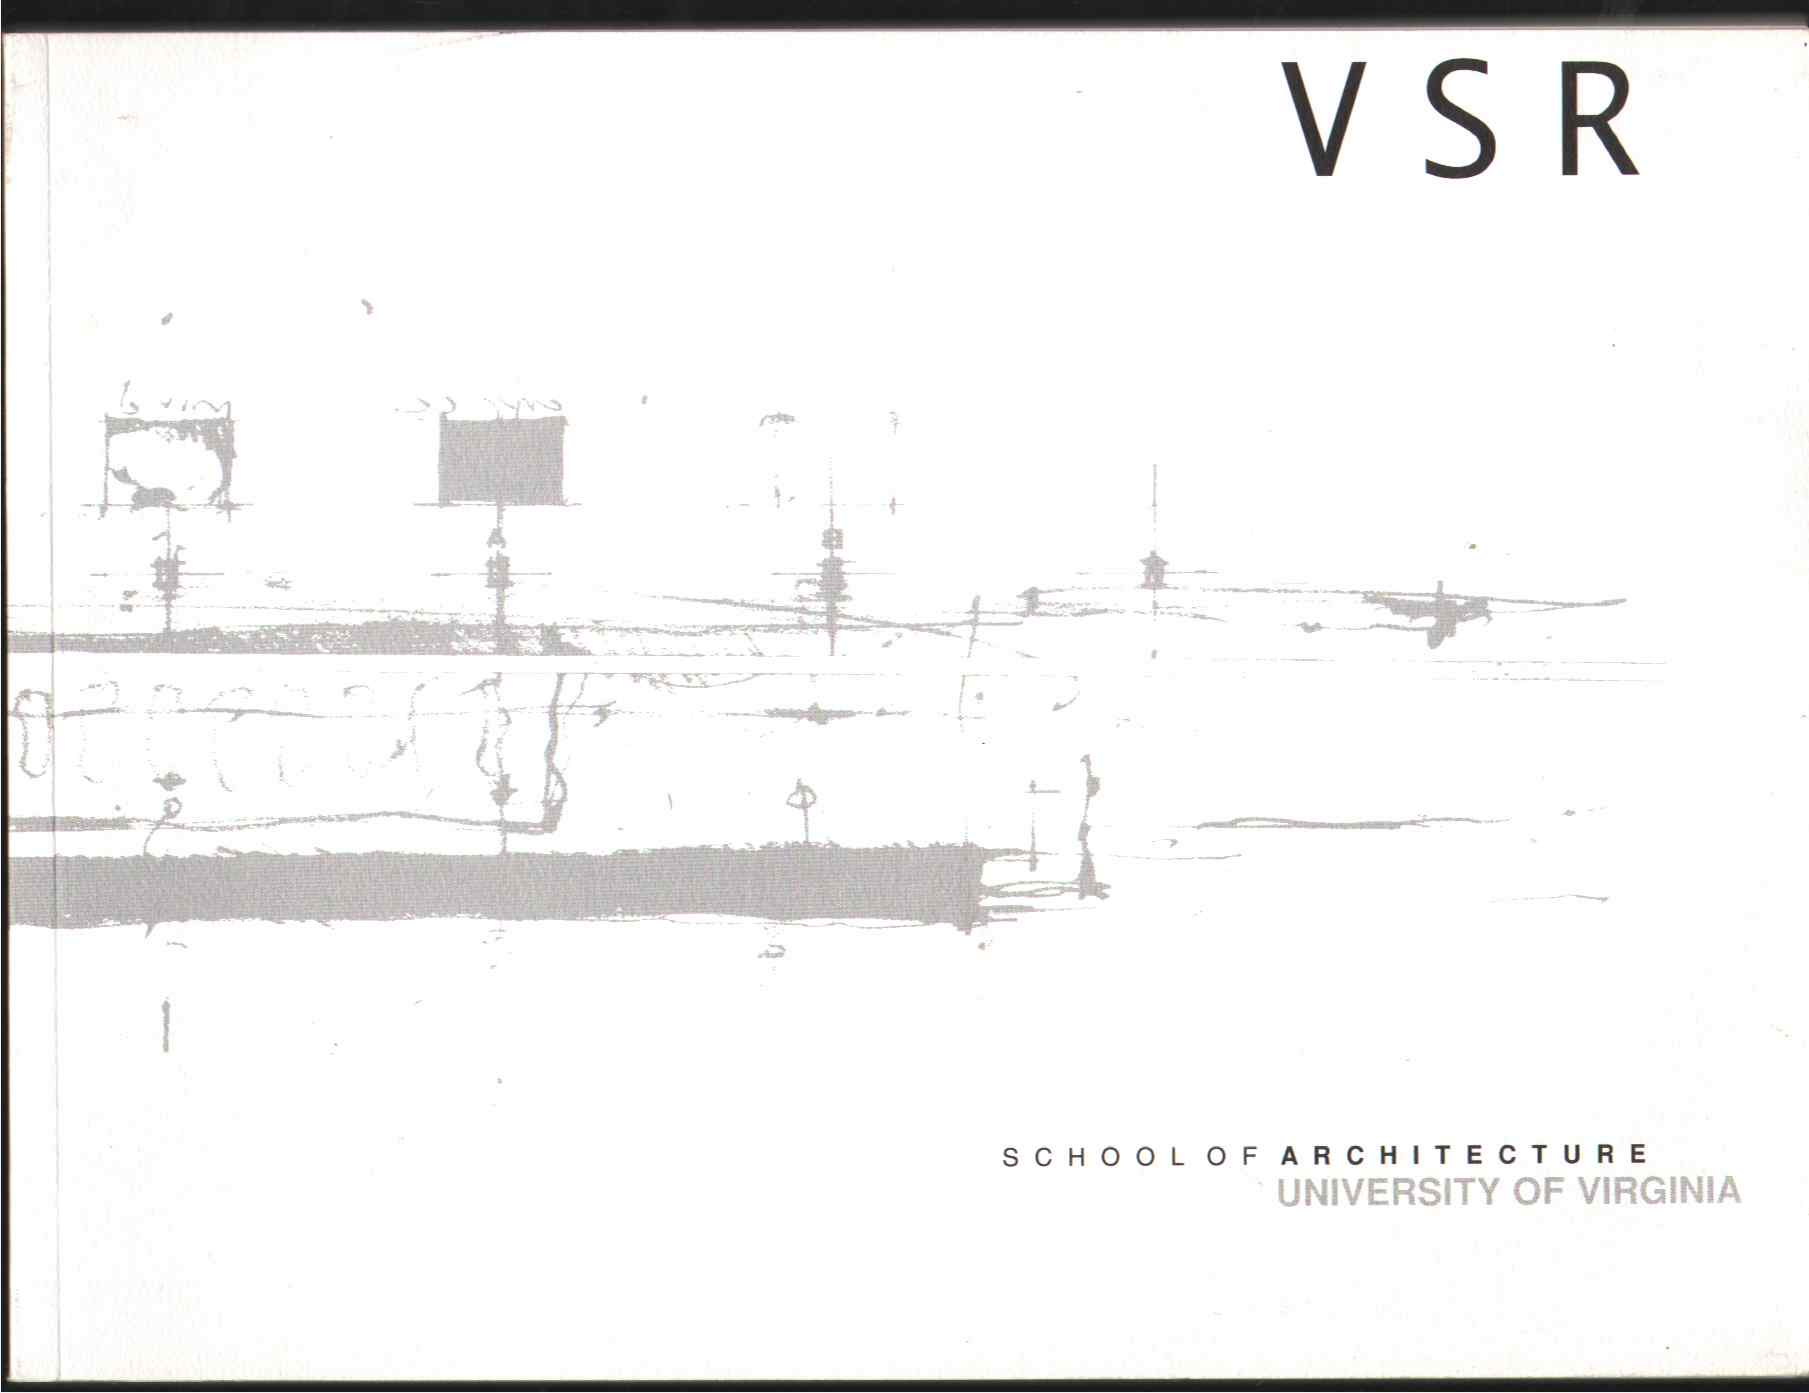 VIRGINIA STUDIO RECORD 1997-1998 Issue, School Of Architecture